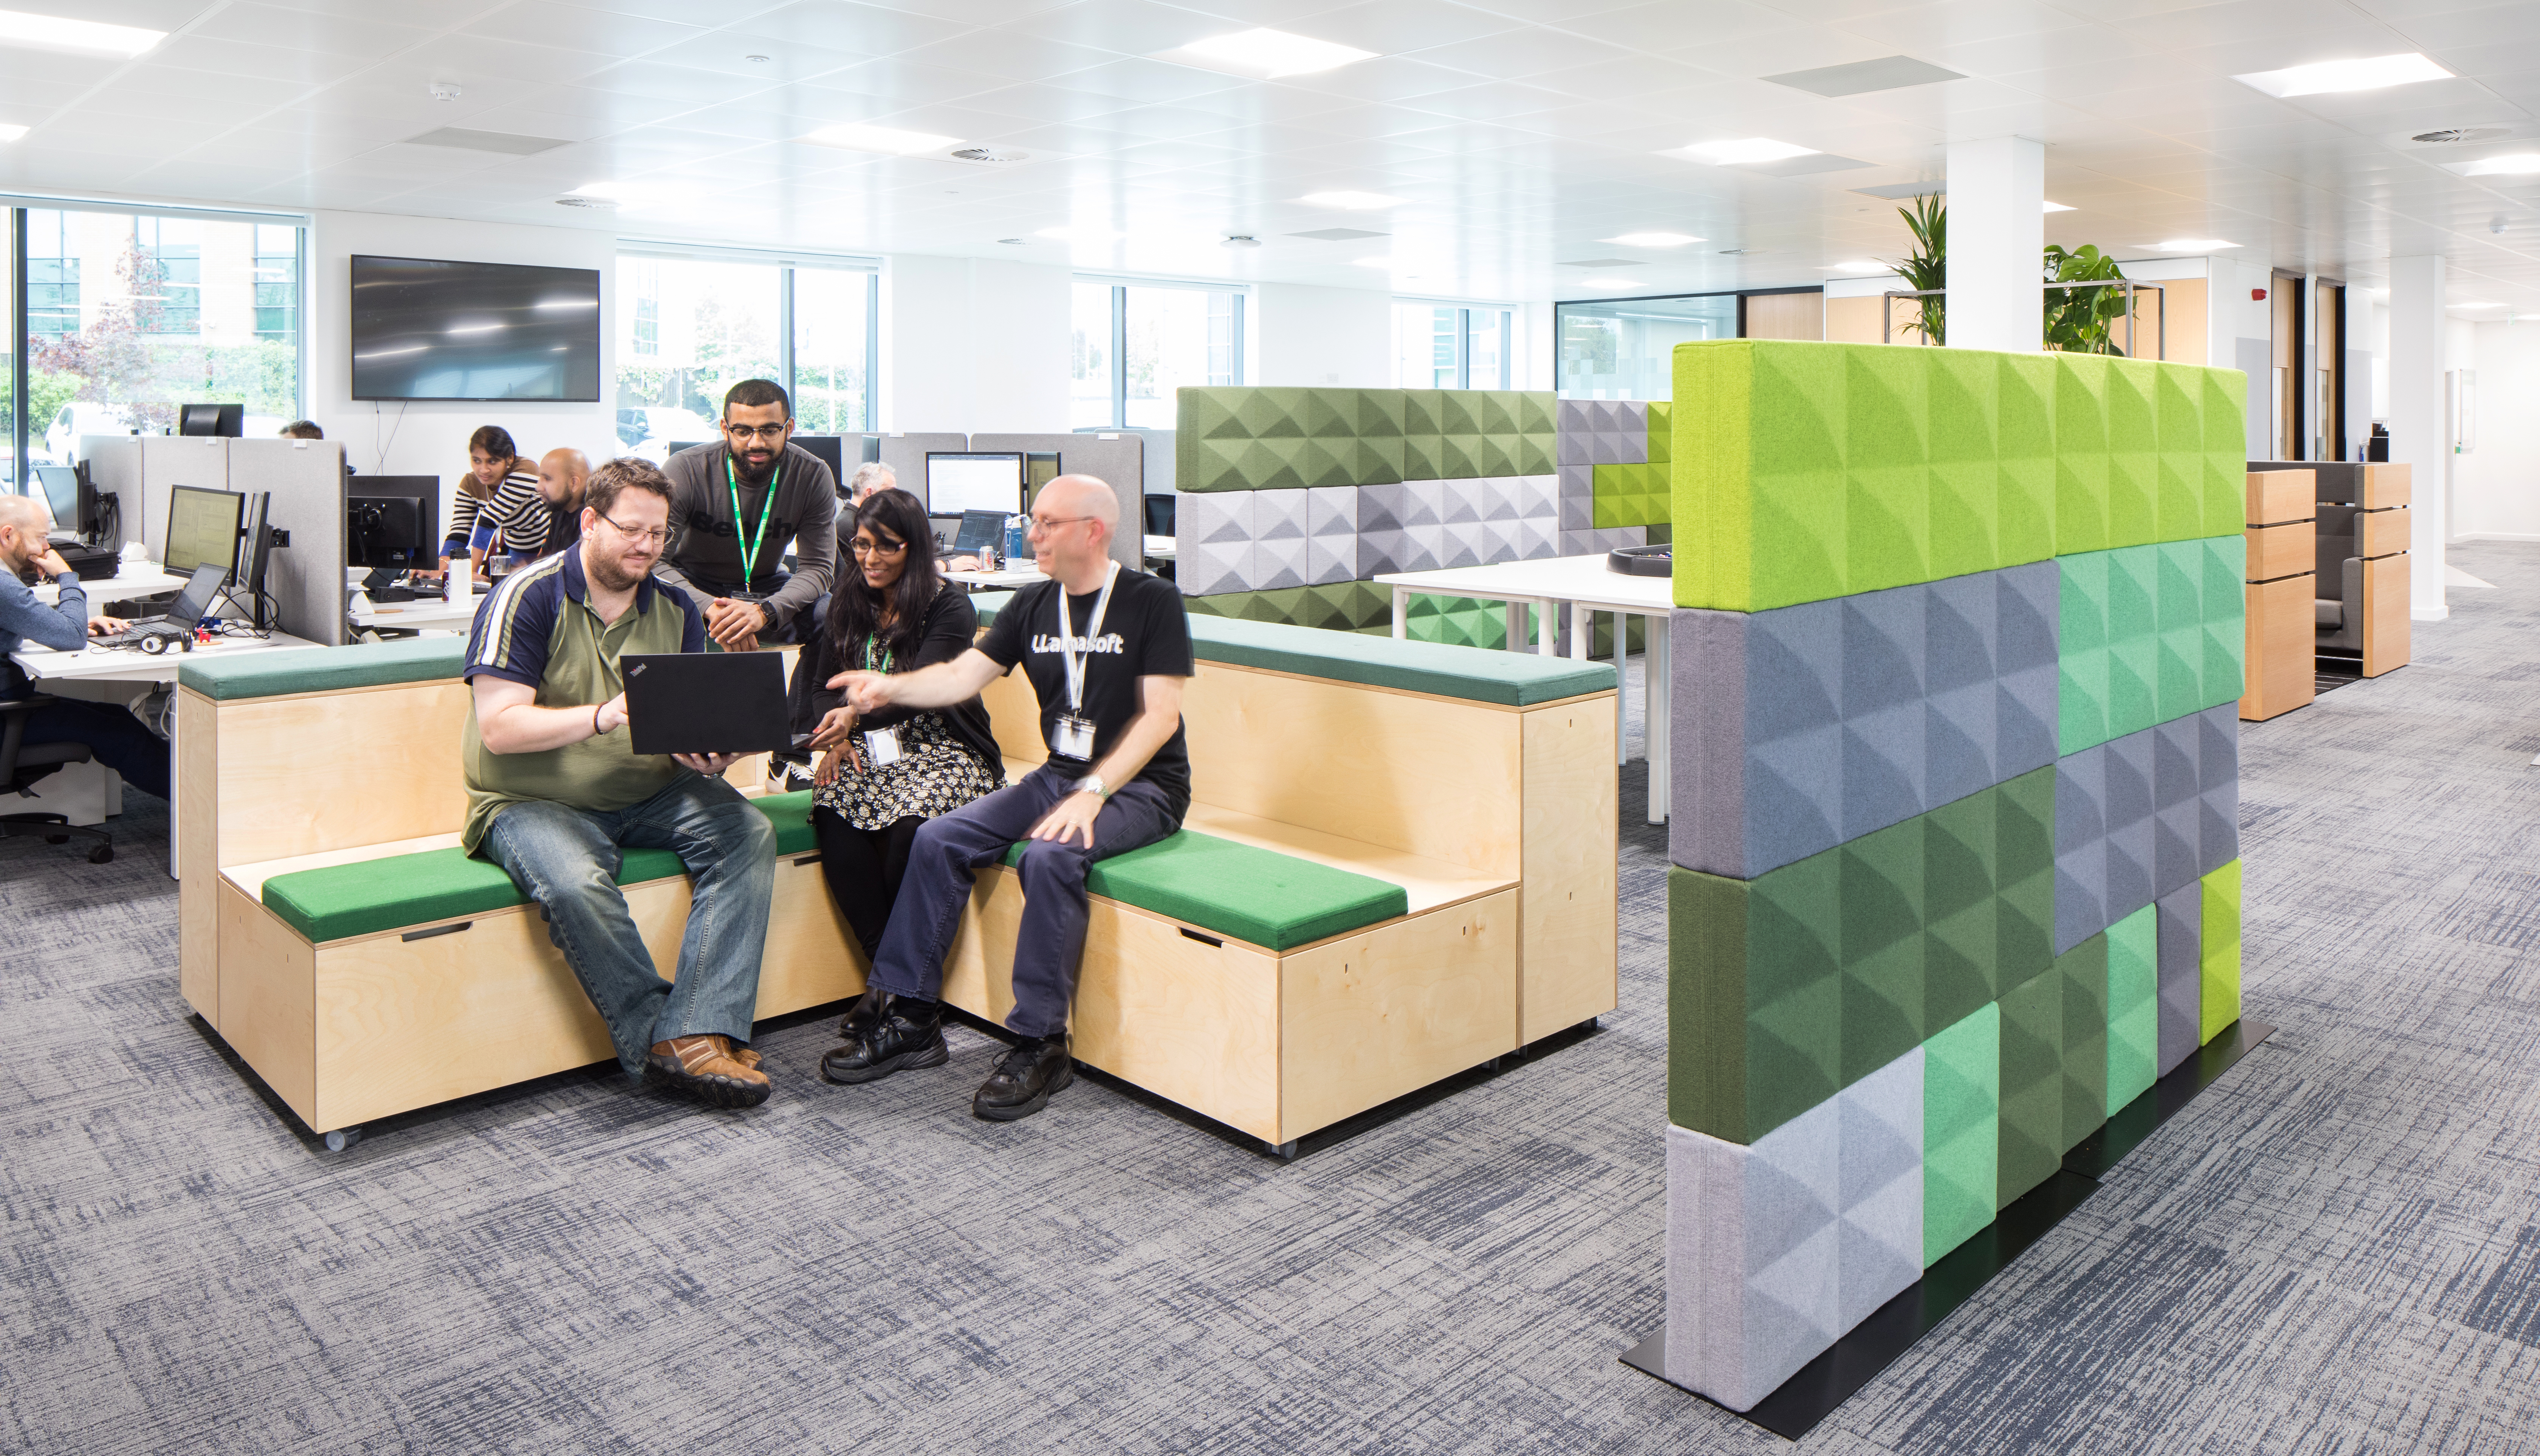 Team collaborating on seating area in office